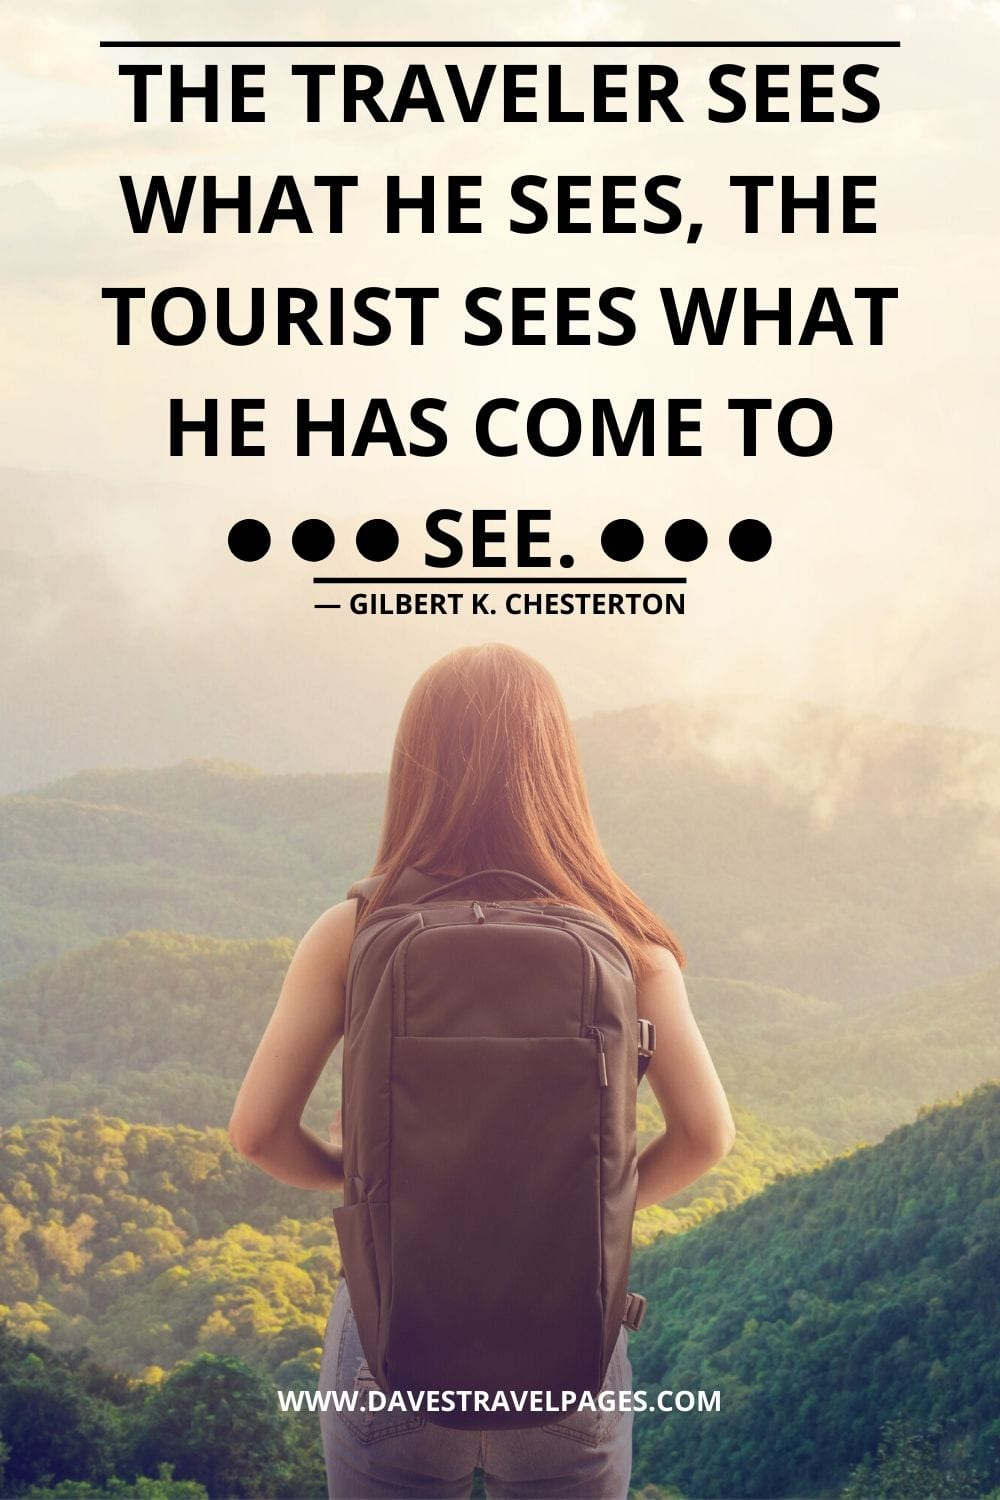 Quotes for Travelers: The traveler sees what he sees, the tourist sees what he has come to see. ― Gilbert K. Chesterton